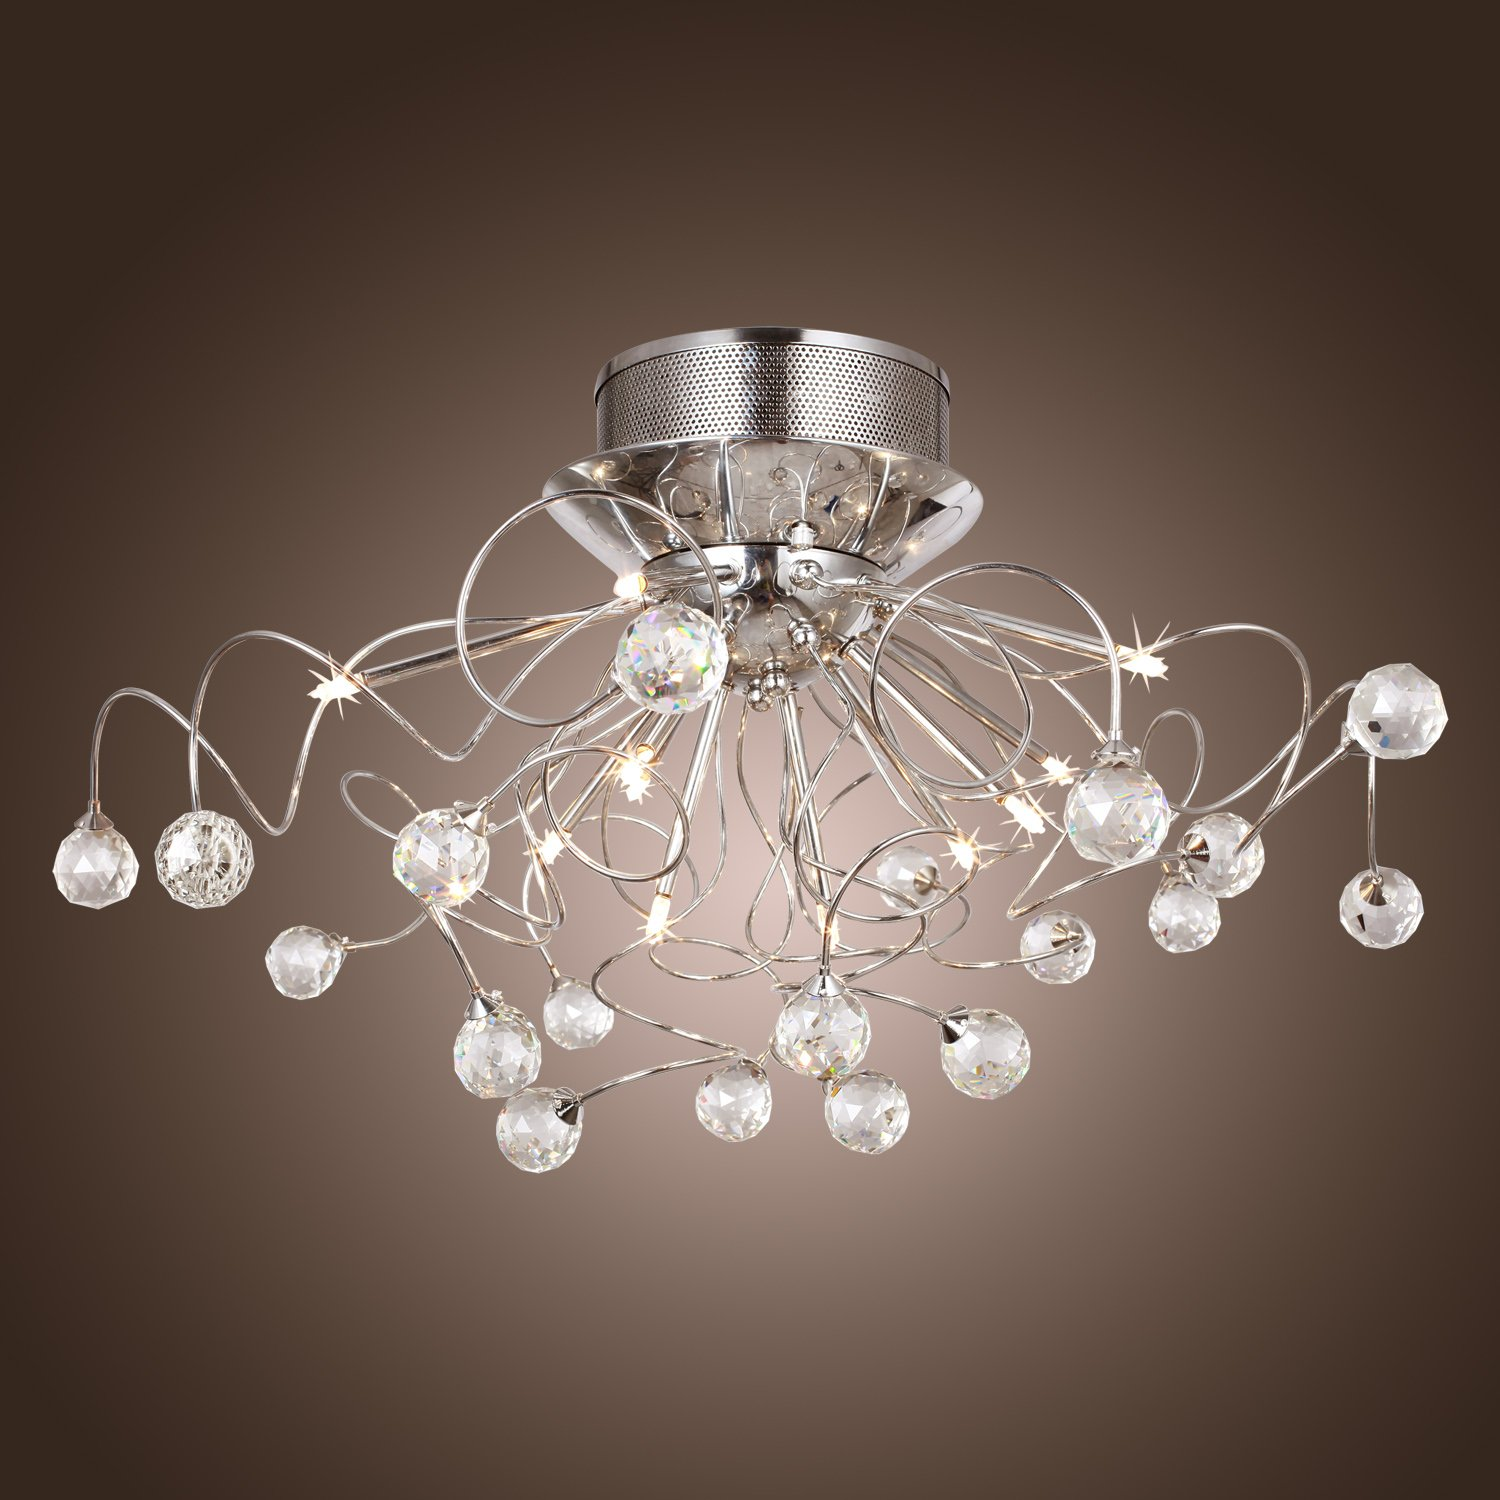 Lightinthebox modern crystal chandelier with 11 lights chrom flush mount chandeliers modern ceiling light fixture for hallway entry bedroom living